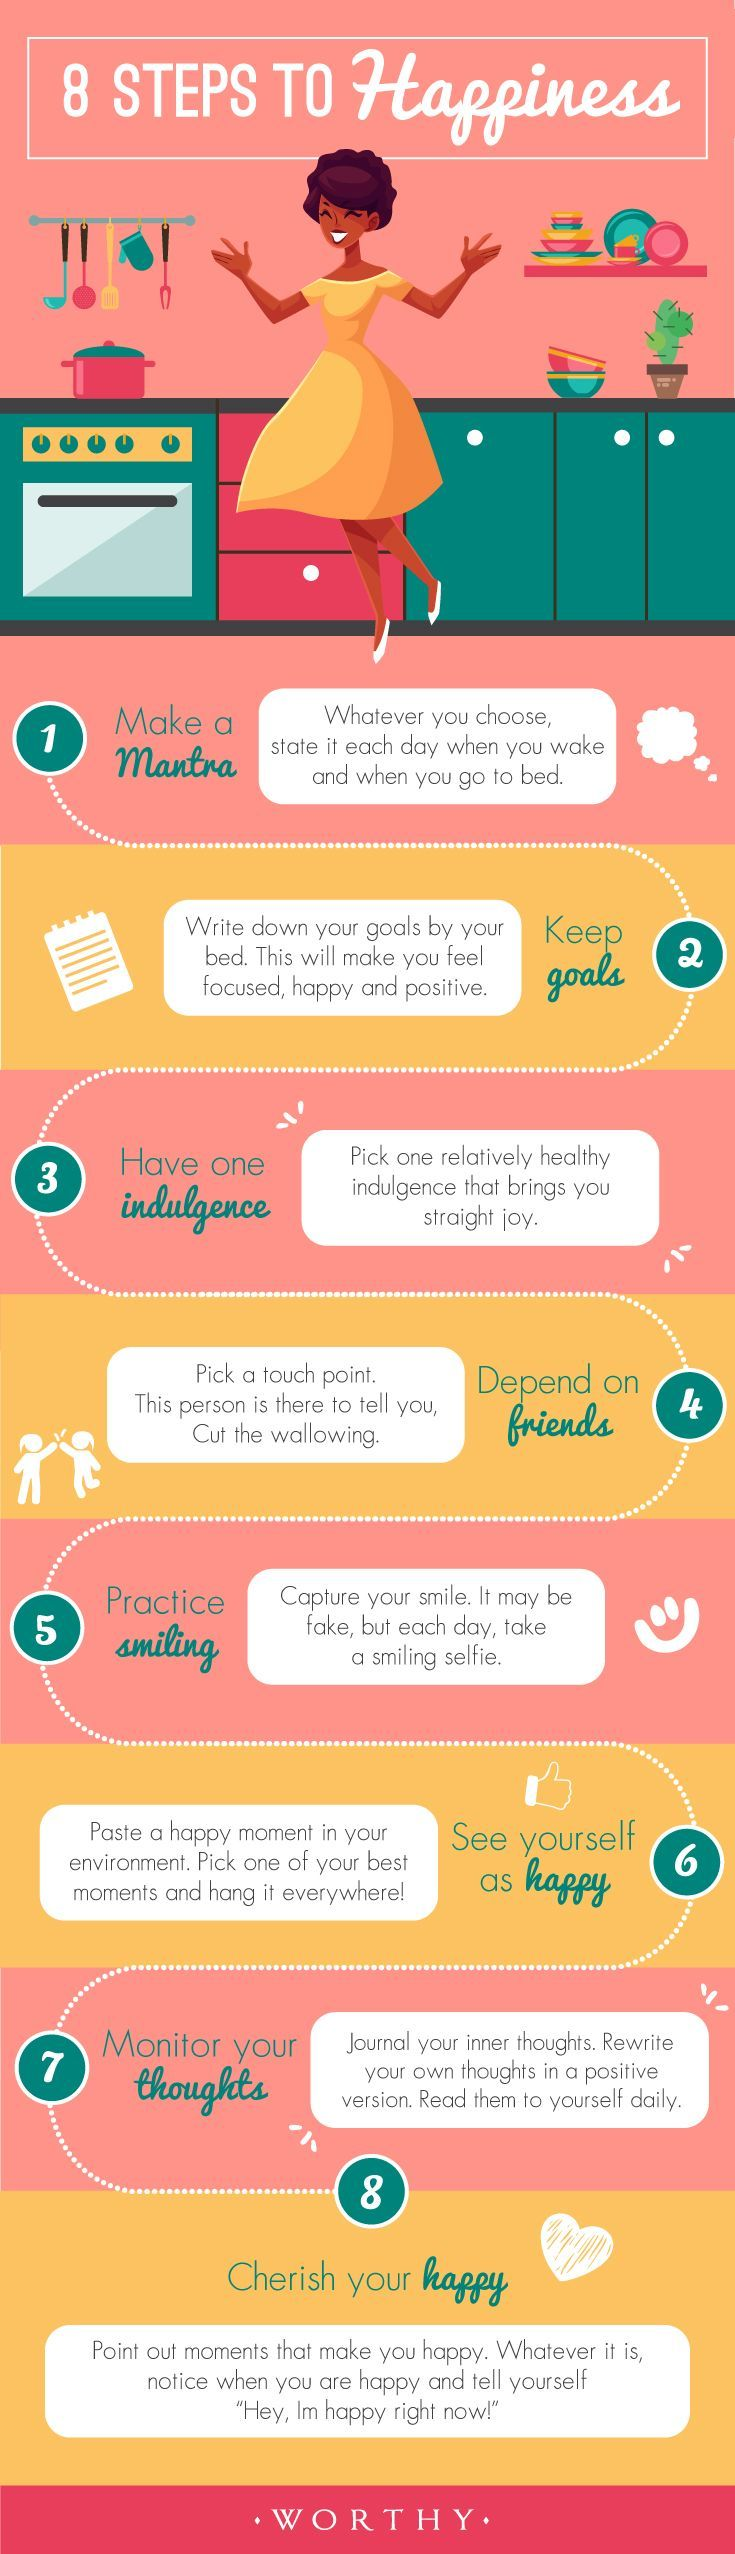 8 Steps to Happiness. Little things to do each day to make all of your days better!